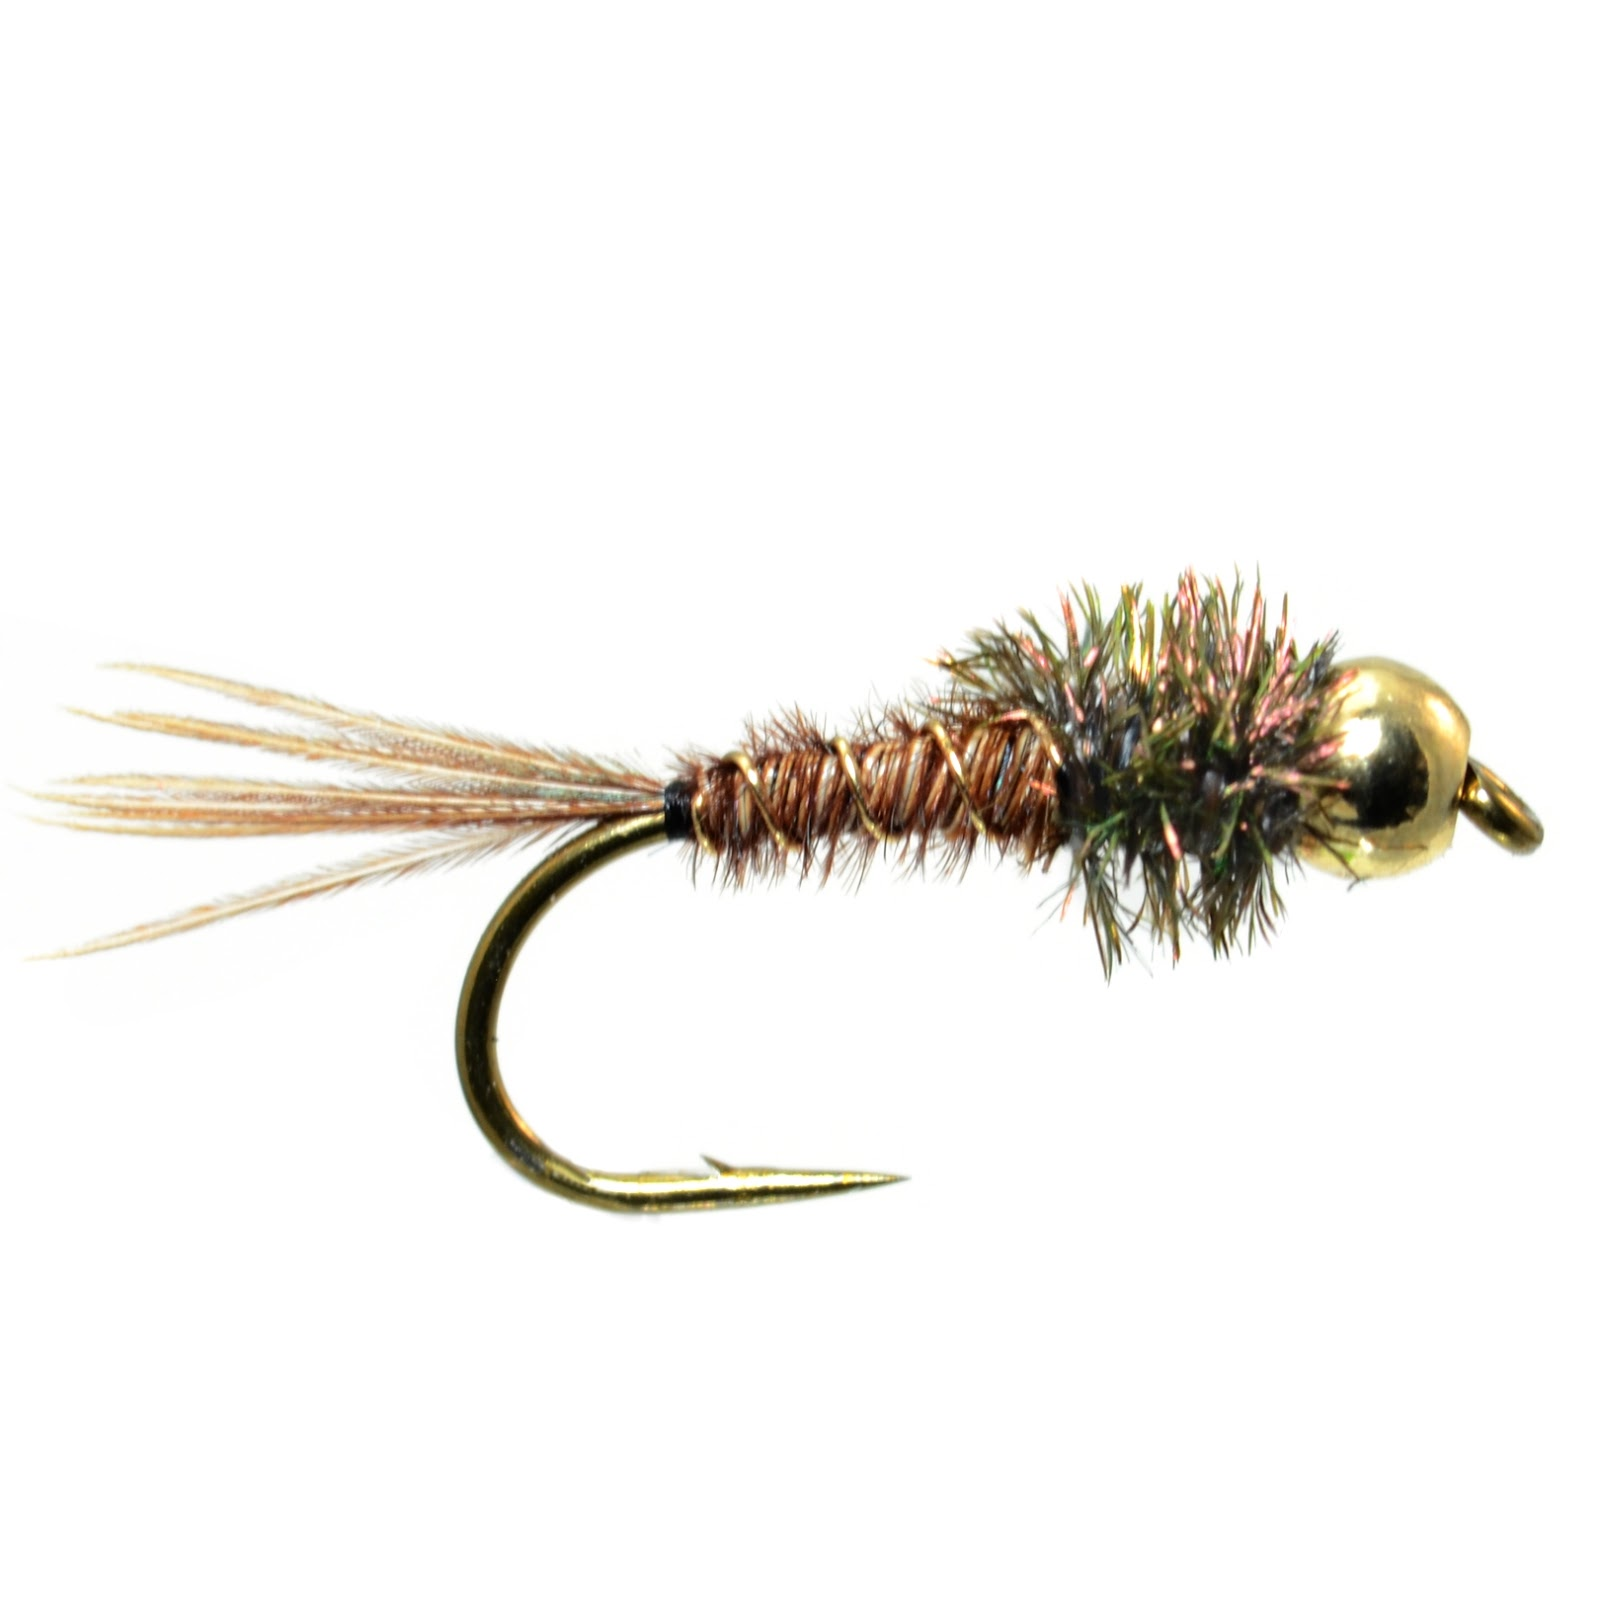 Beginner fly tying easy pheasant tail fly fish food for Fly fishing tying